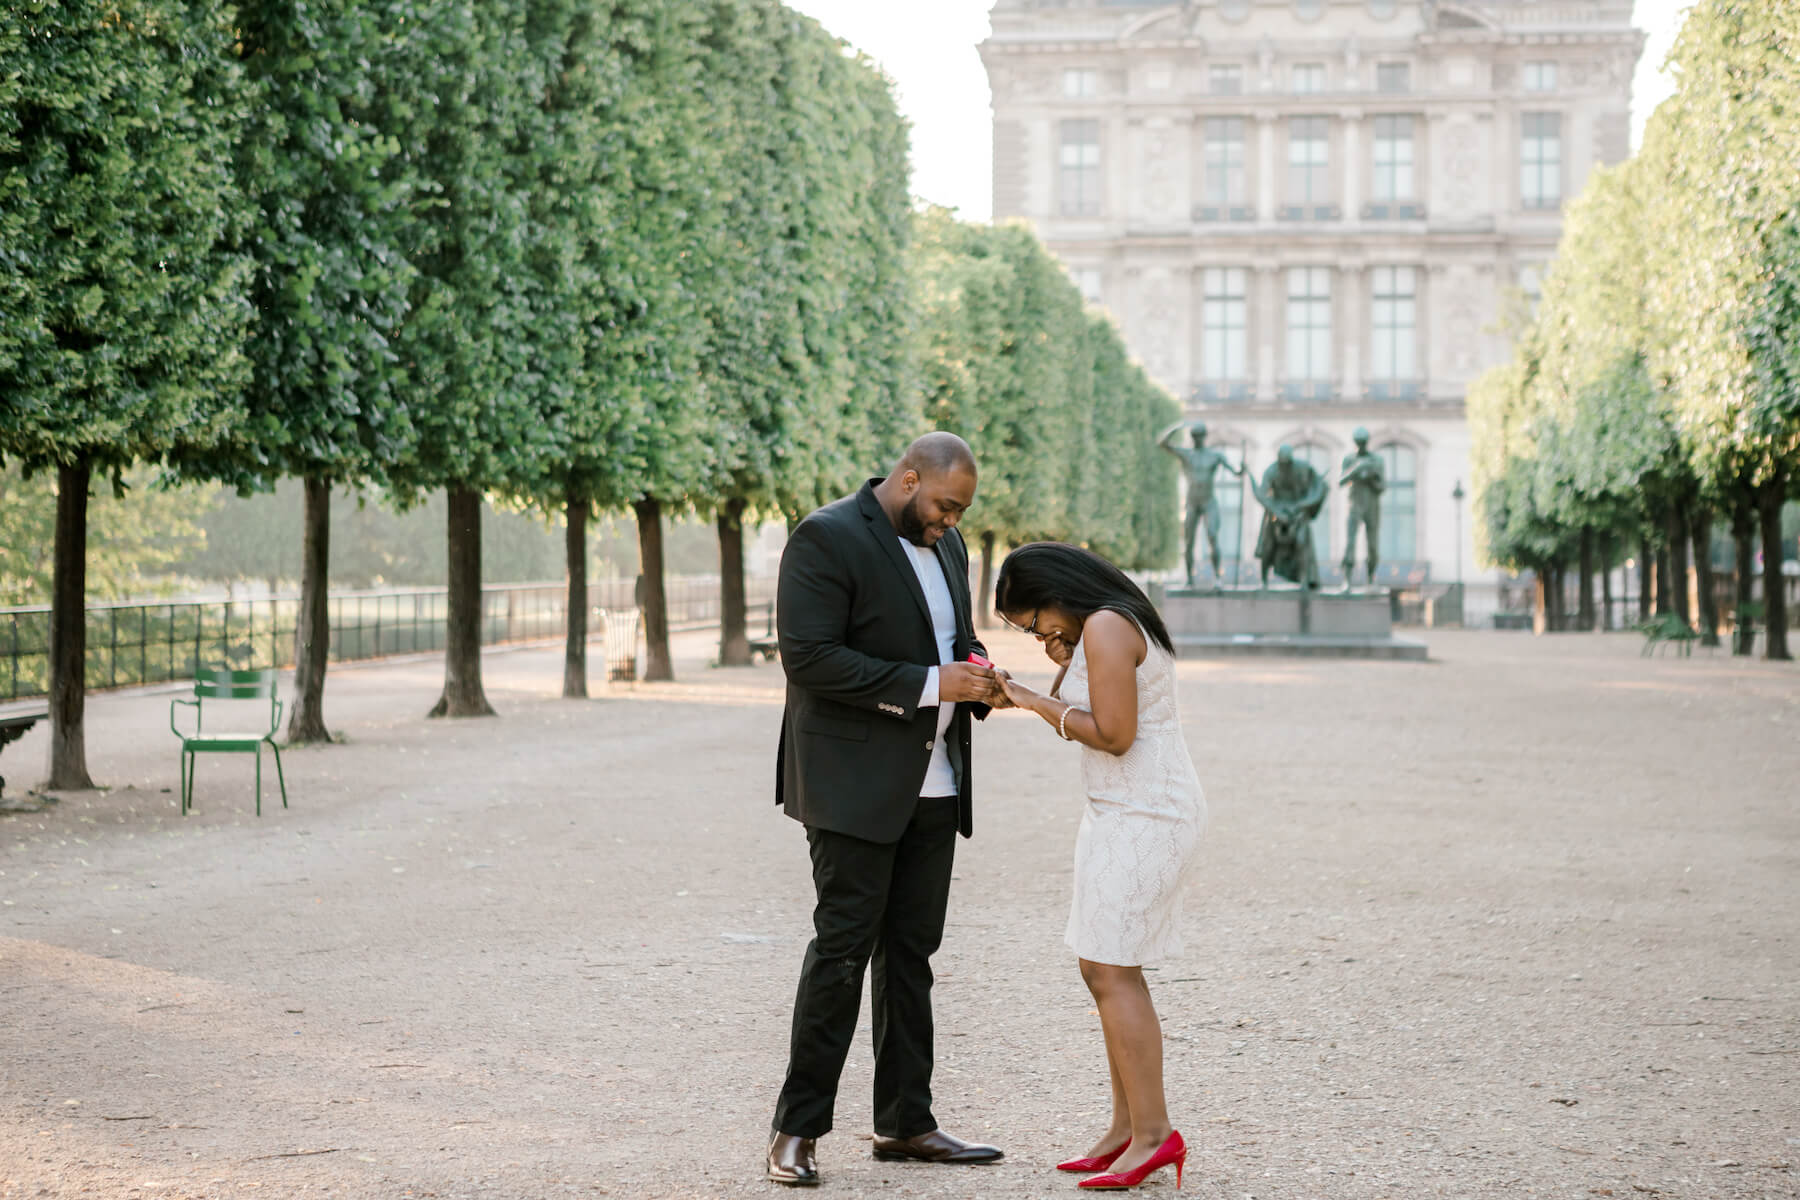 A woman excited and happy after being proposed on the Louvre grounds in Paris, France